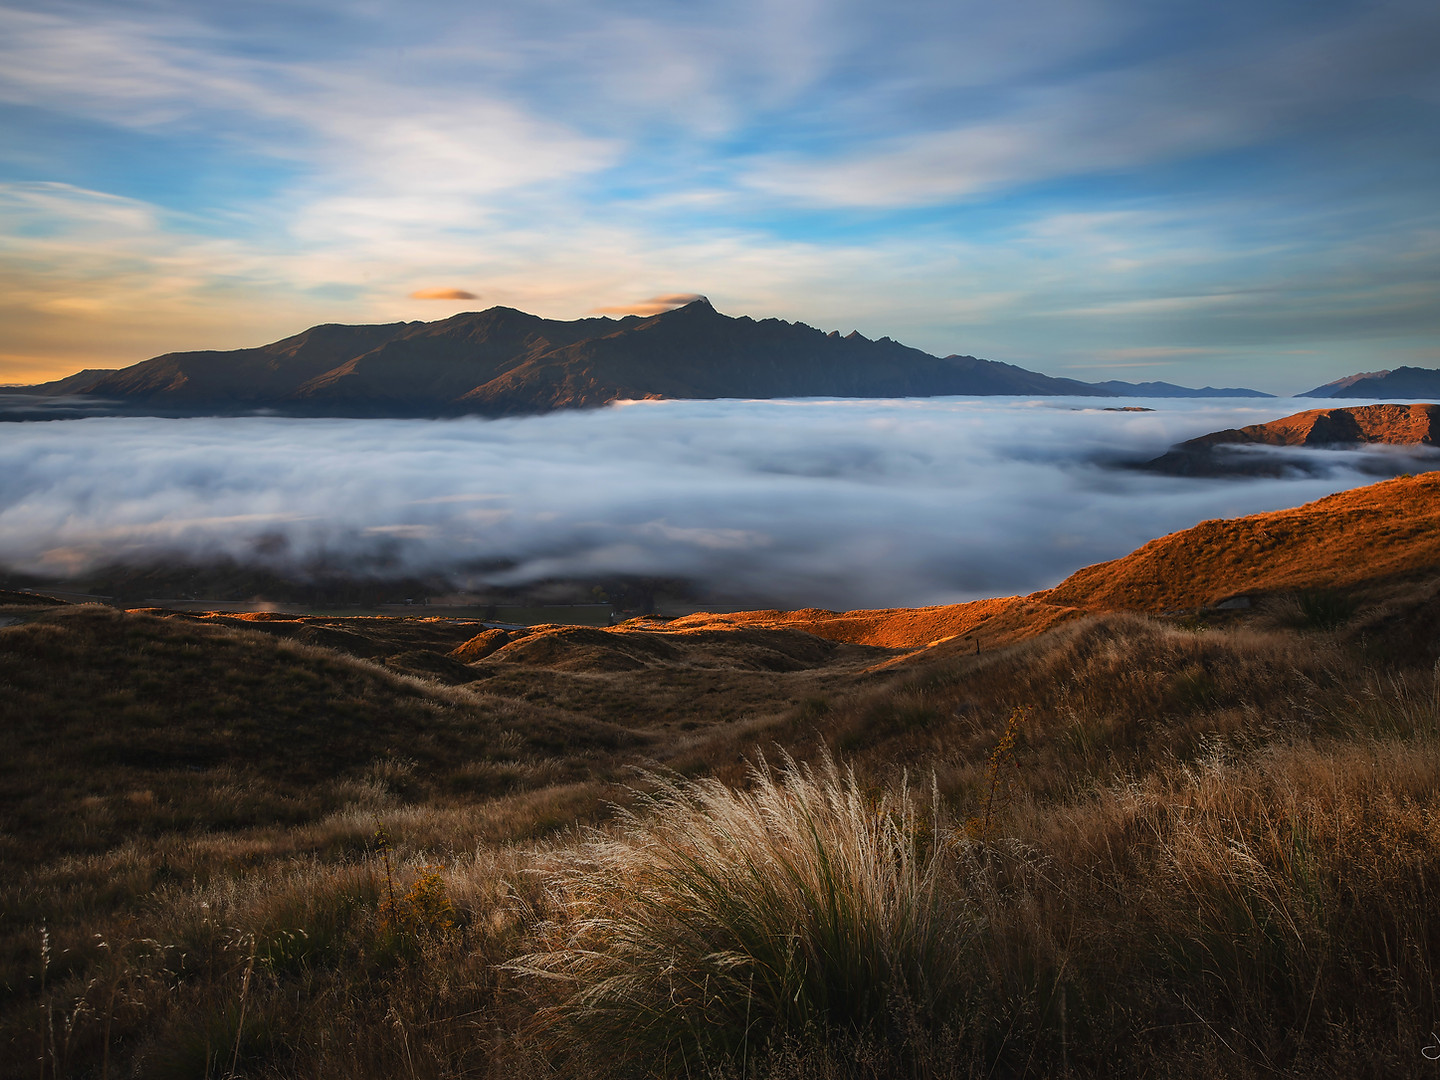 Coronet peak - sunrise